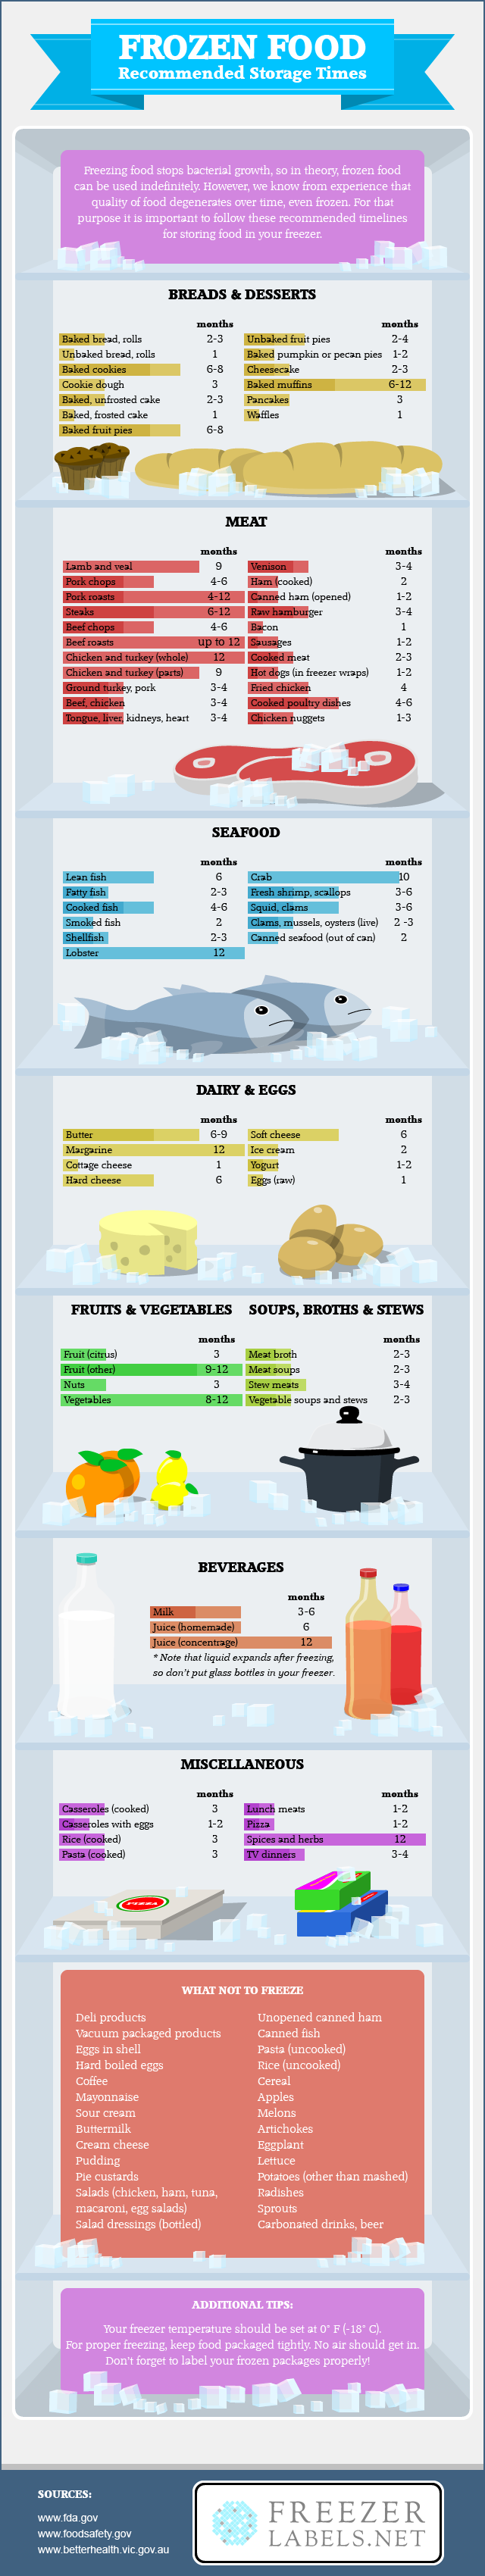 How Long Can You Keep Different Types Of Food In The Freezer?